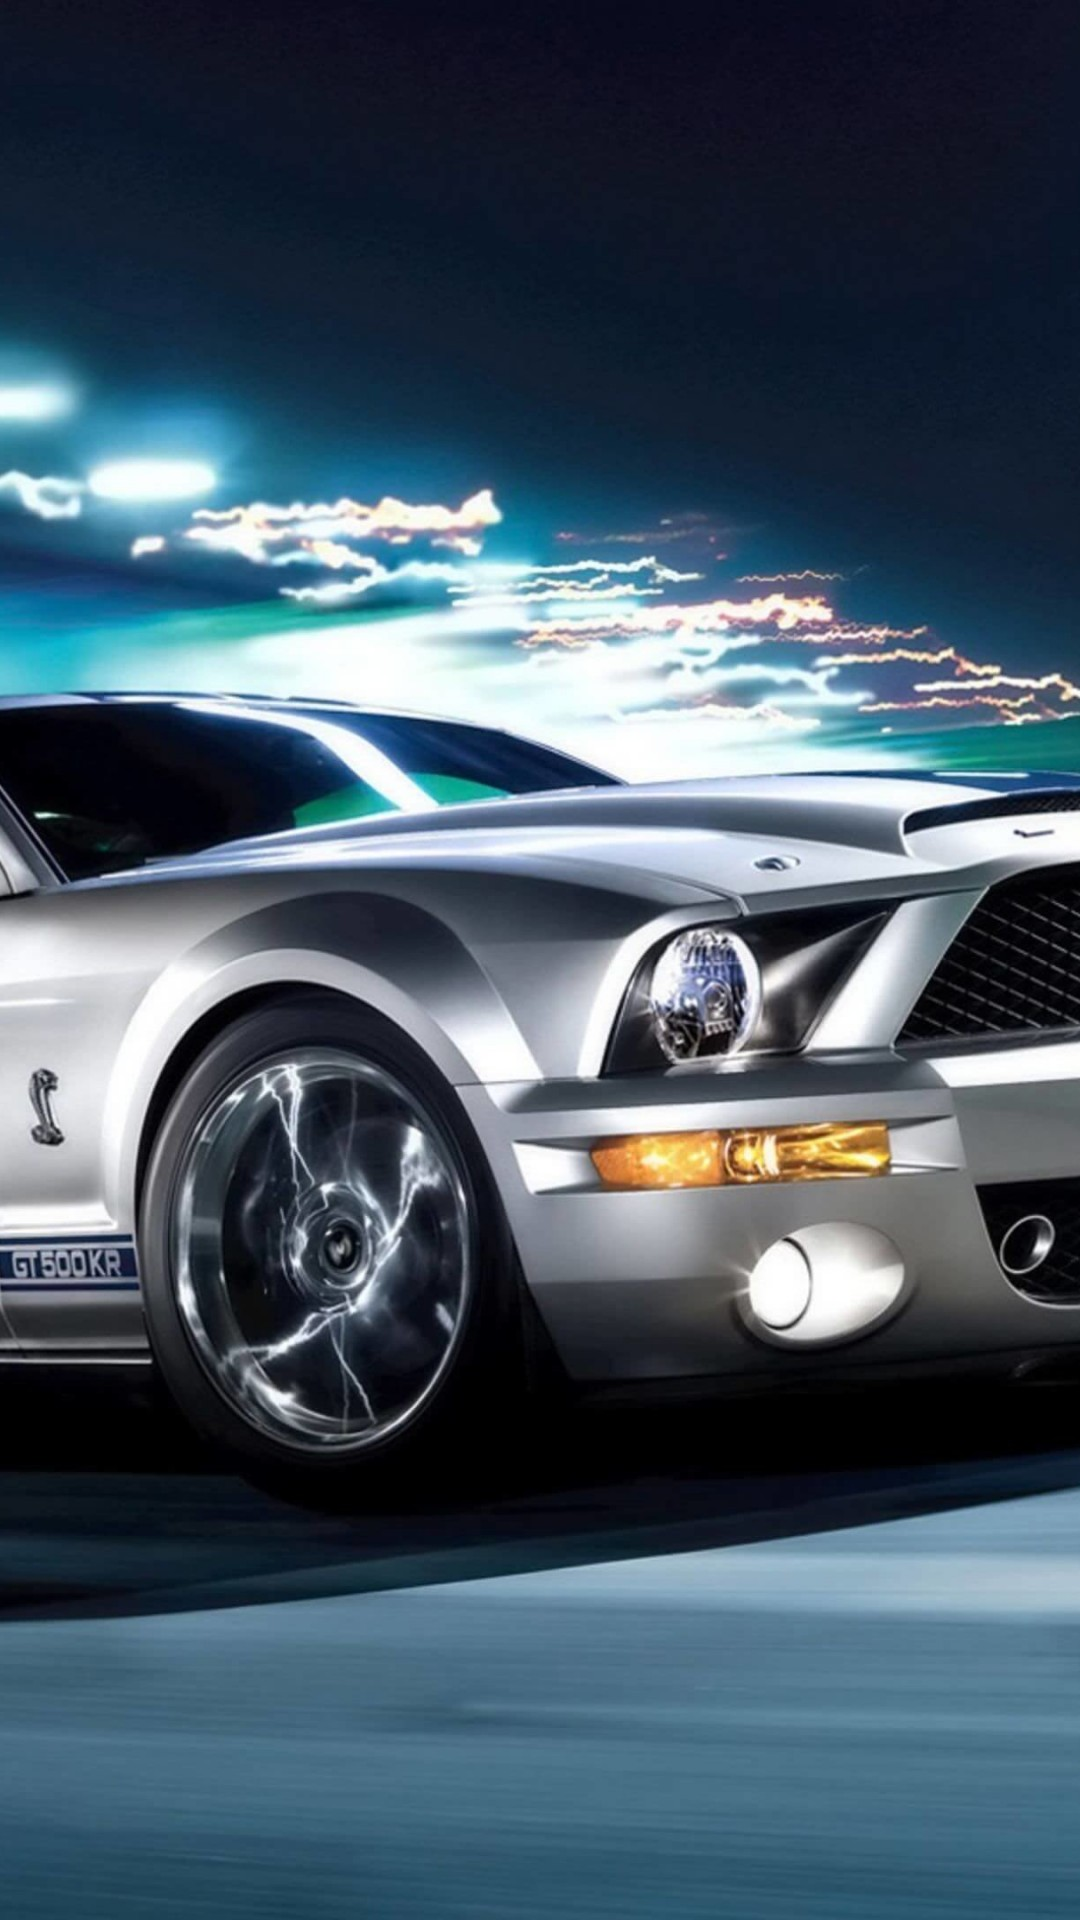 Ford Mustang Shelby GT500KR Wallpaper for SAMSUNG Galaxy S5